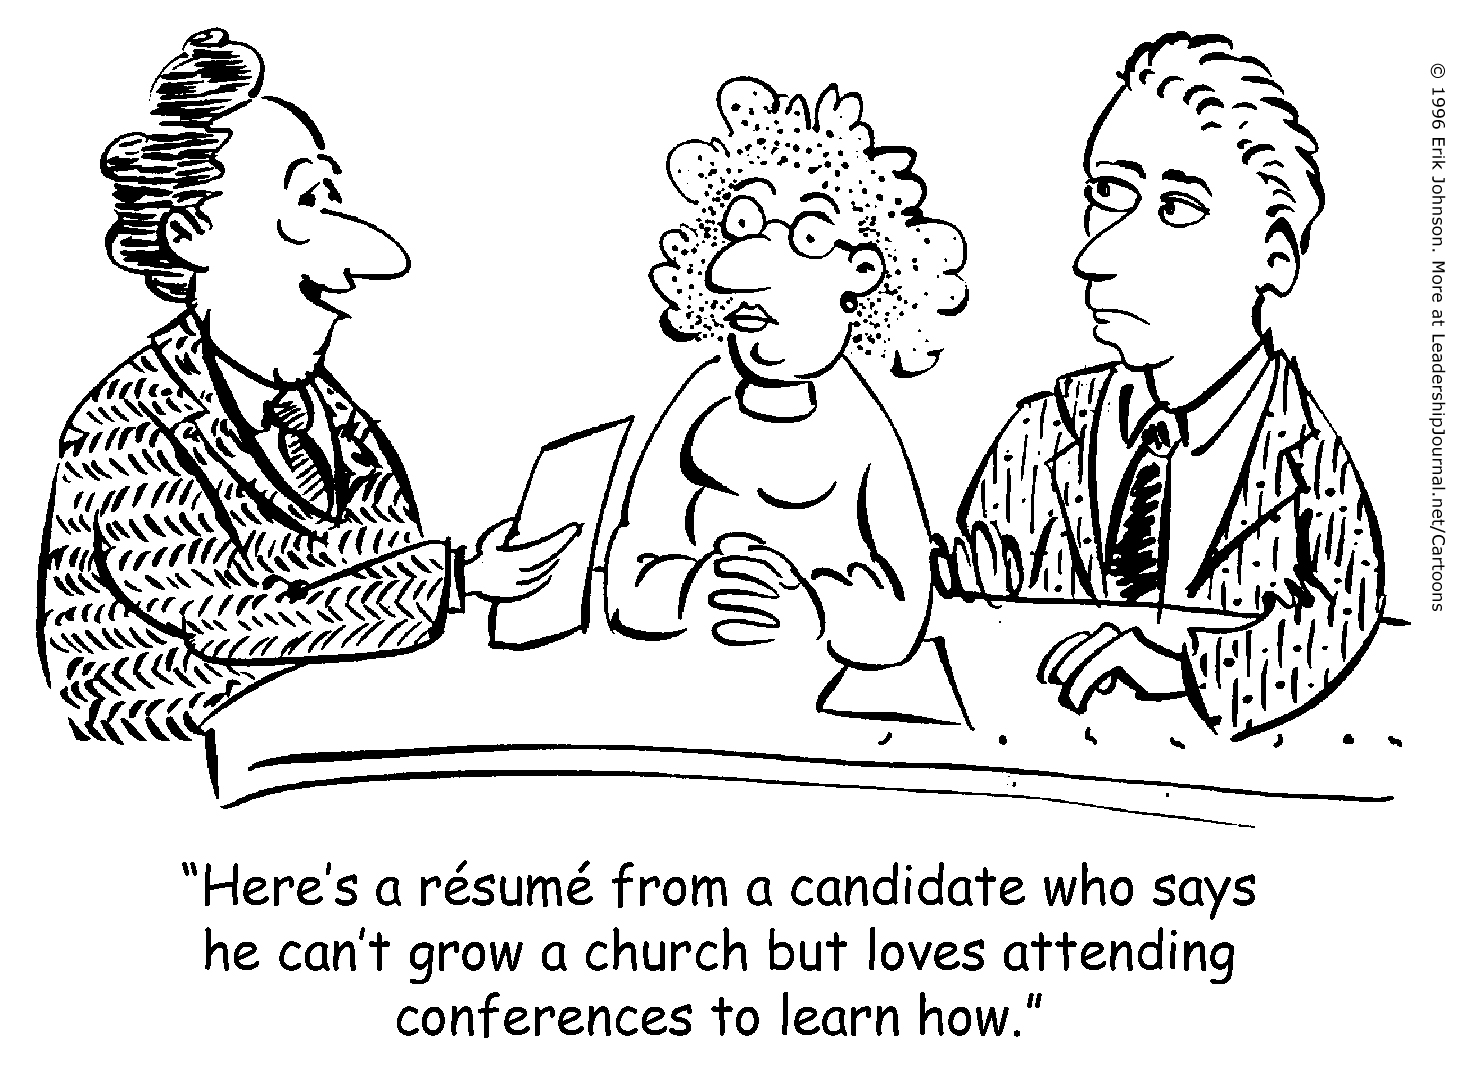 Ineffective Church Growth Conferences